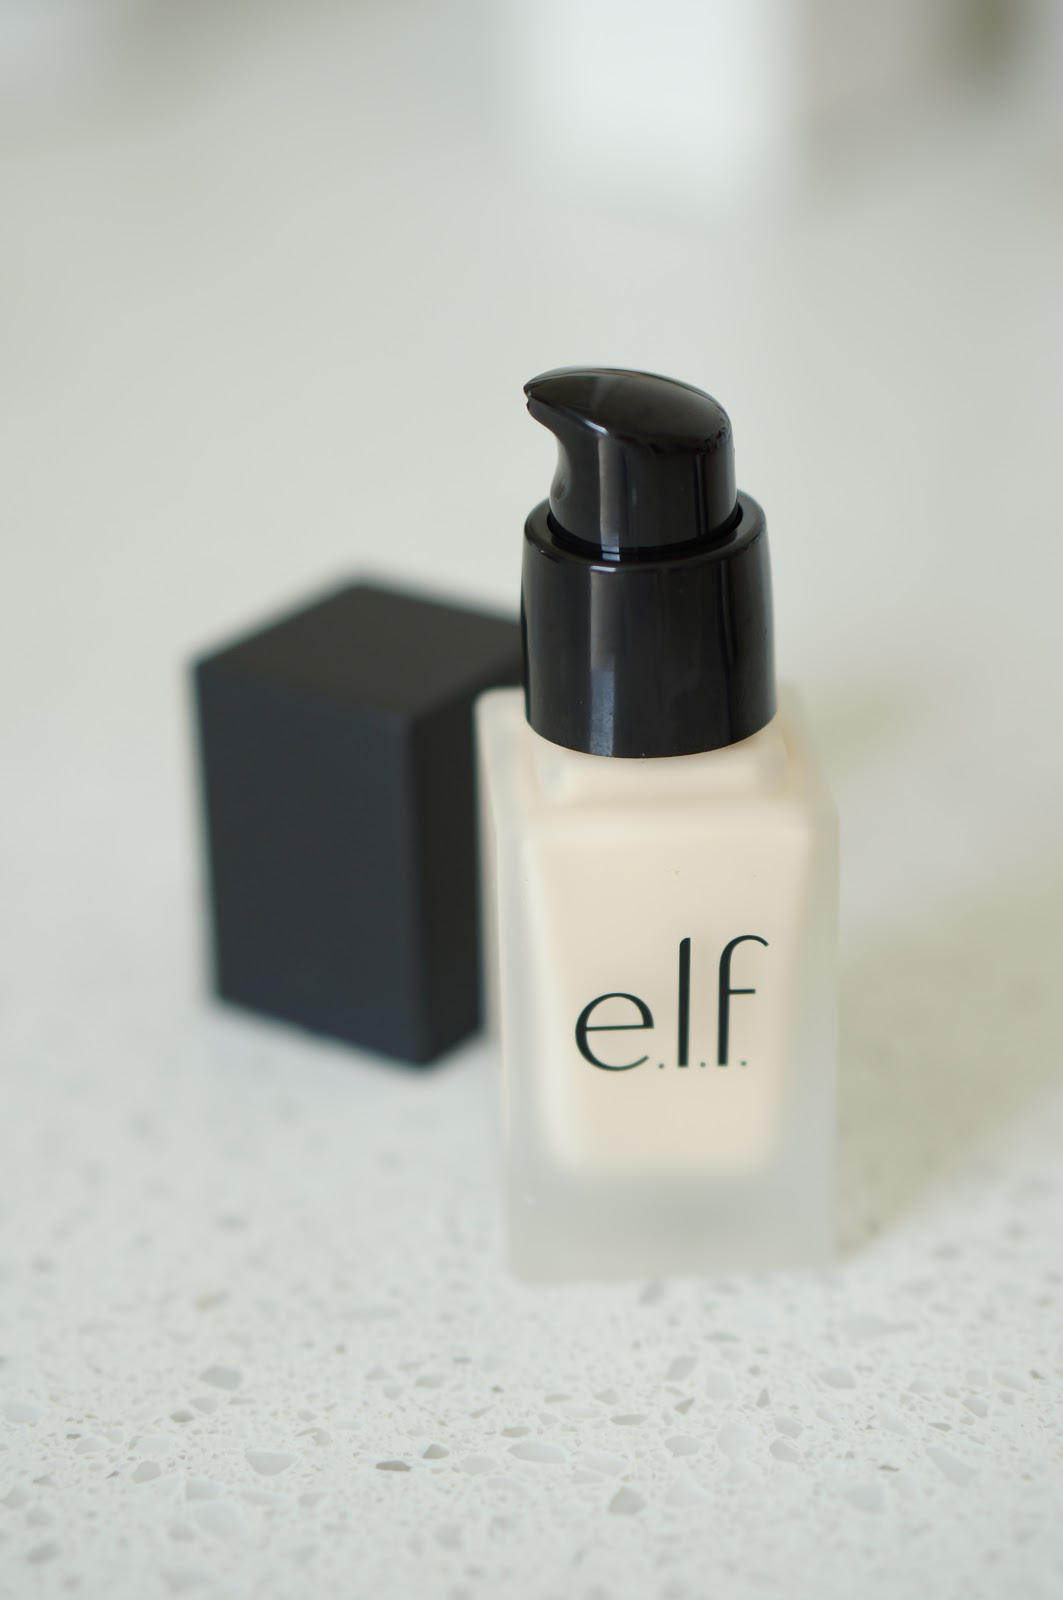 Popular North Carolina blogger Rebecca Lately shares her newest foundation Friday find.  Check out her review on the E.L.F. Flawless Finish Foundation!